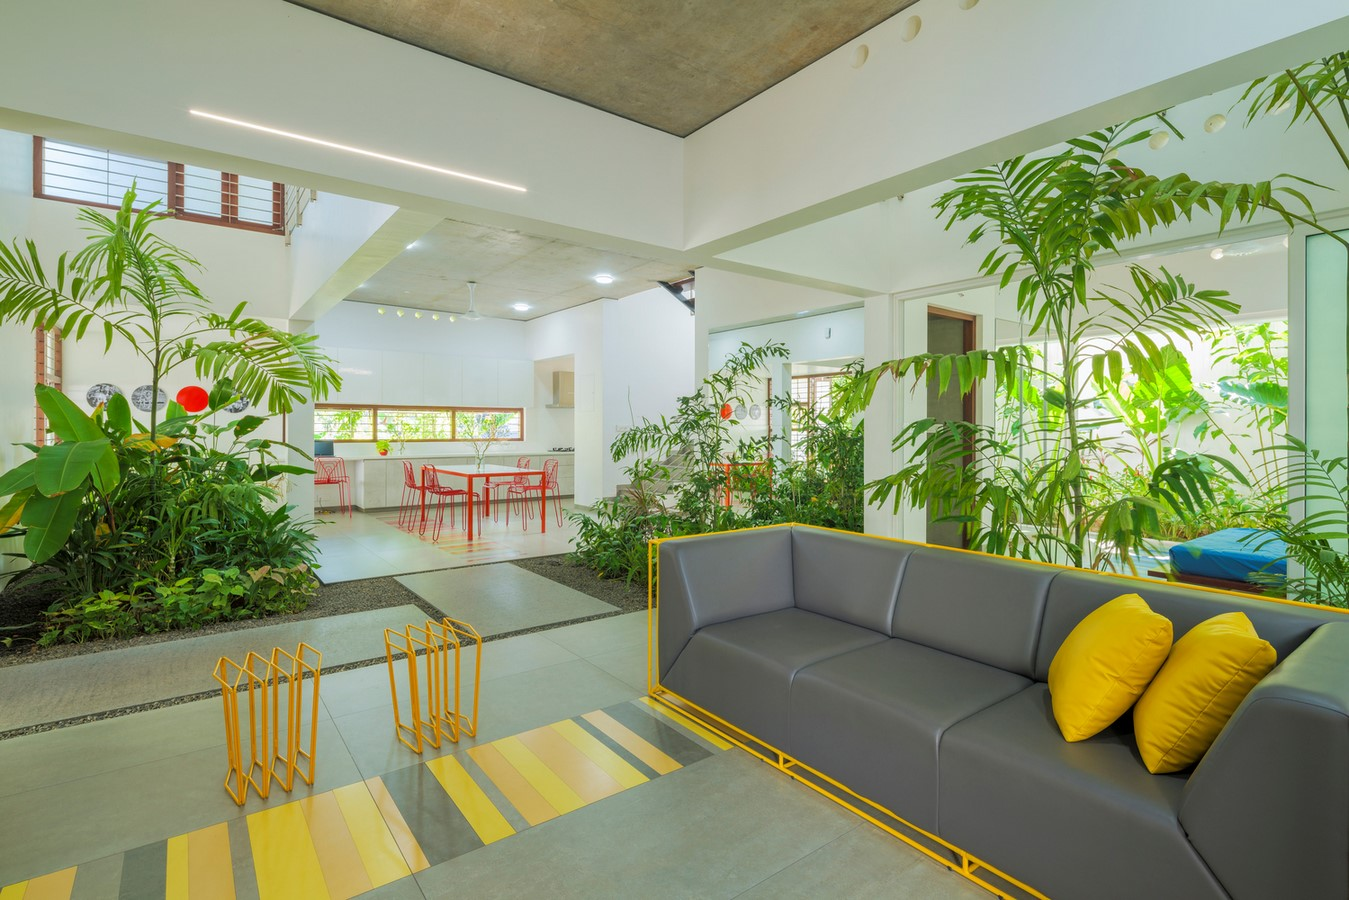 6 Things you did not know about Biophilic Design - Sheet9